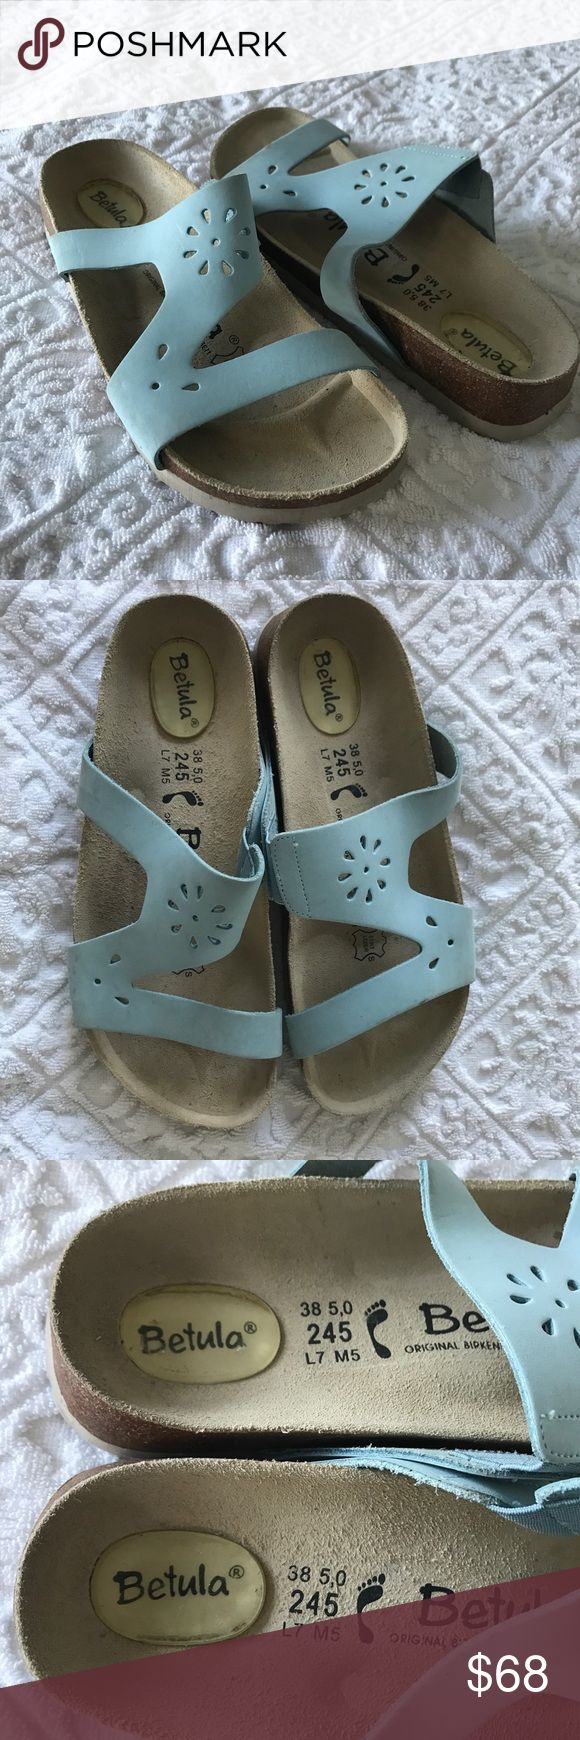 Betula Birkenstock Sandals Blue Leather L7 NEW Betula Birkenstock Women's Size 7 Sandals Gel Heel Light Blue Leather Flower Cut Out Elasticized Insert New Without Box DISPLAY 100% Authentic Thank You Birkenstock Shoes Sandals